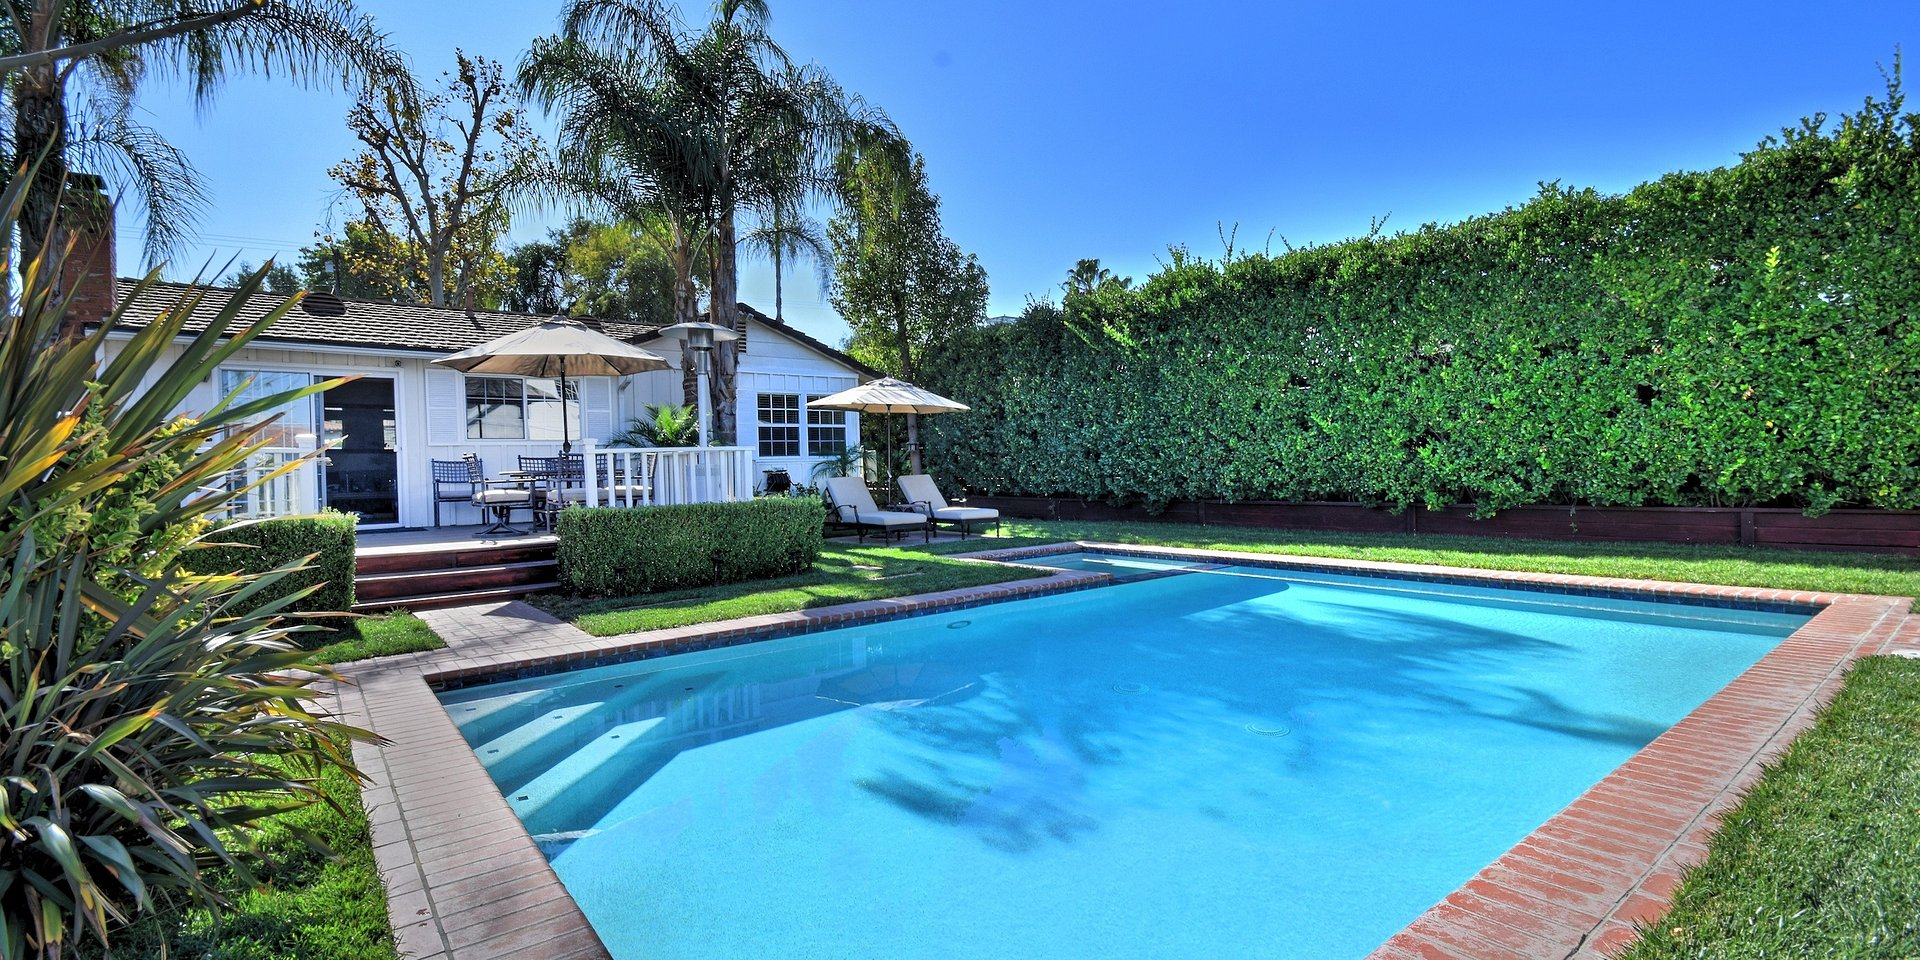 Coldwell Banker Residential Brokerage Lists Woodland Hills Property with Smart Pool for $1.299 Million